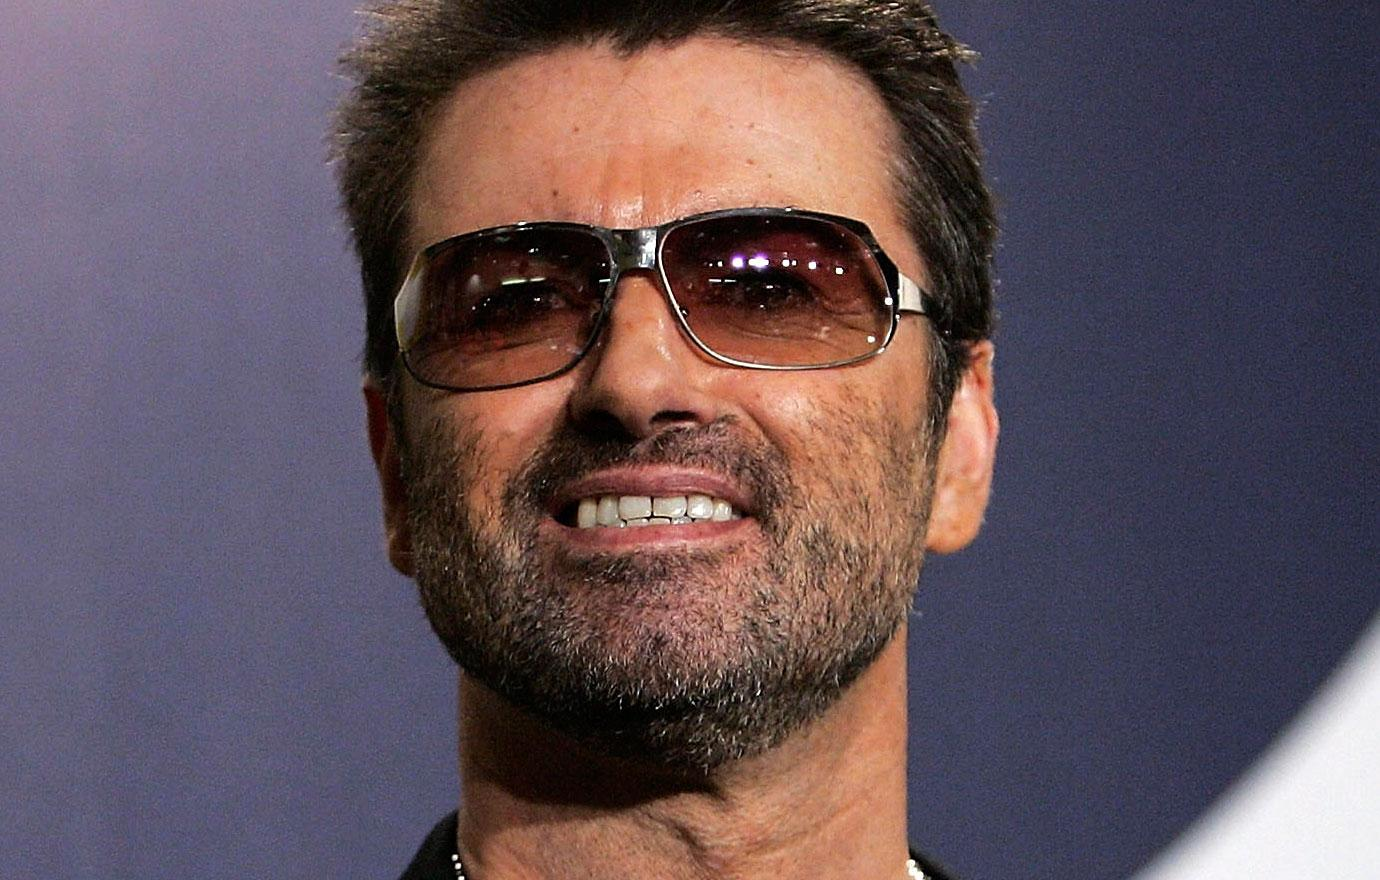 George Michael Making Charity Donations After Death